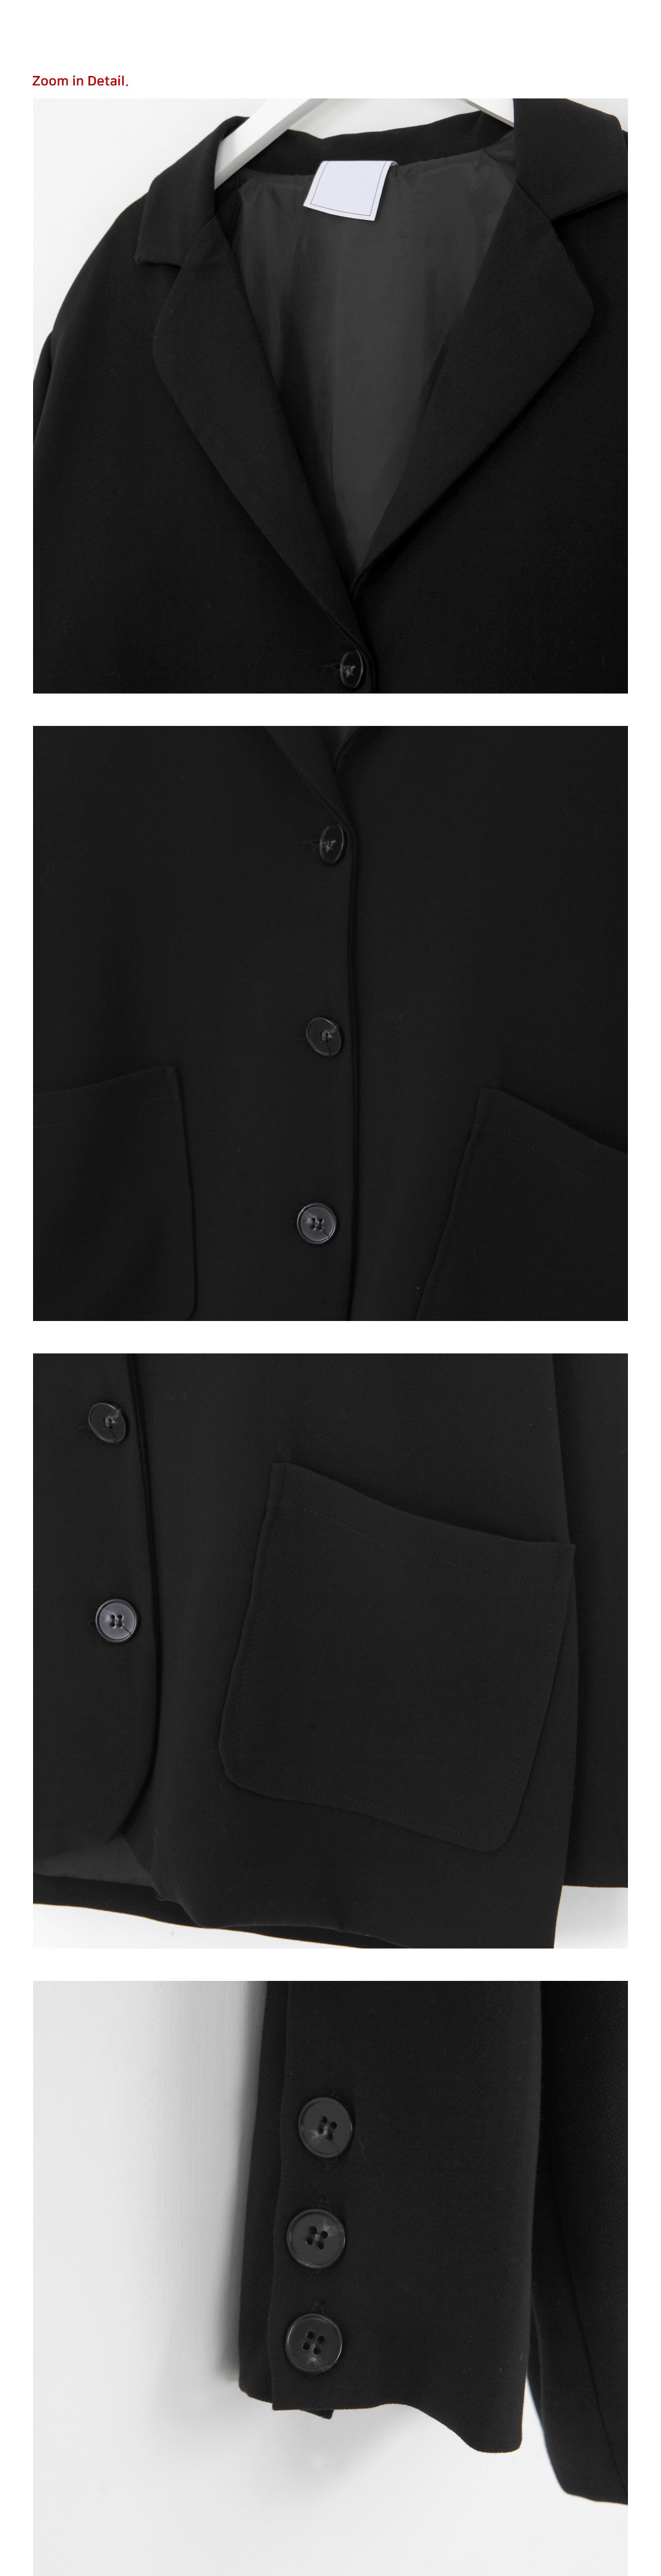 Modernism Single Jacket